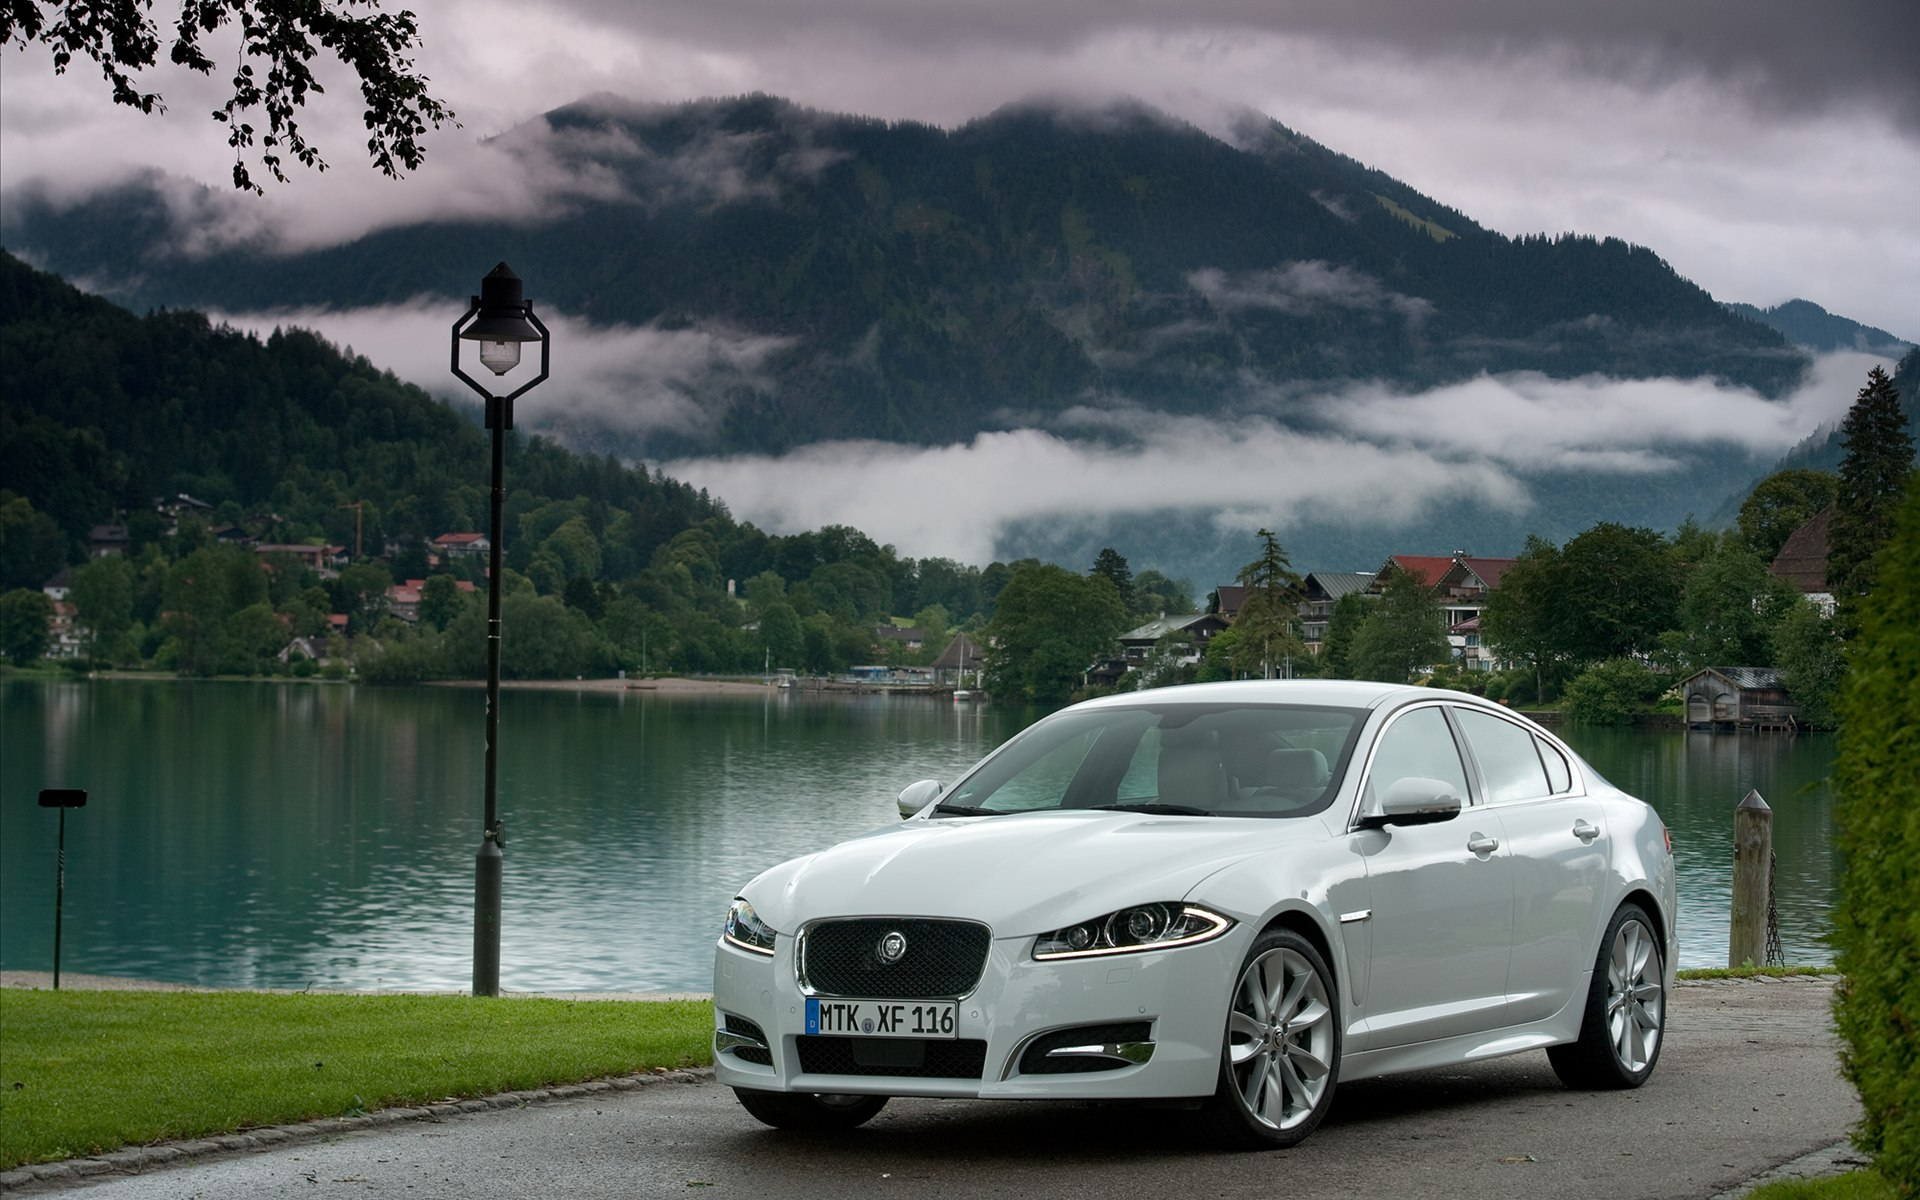 Jaguar Xf Hd Wallpaper 1920x1200 17130